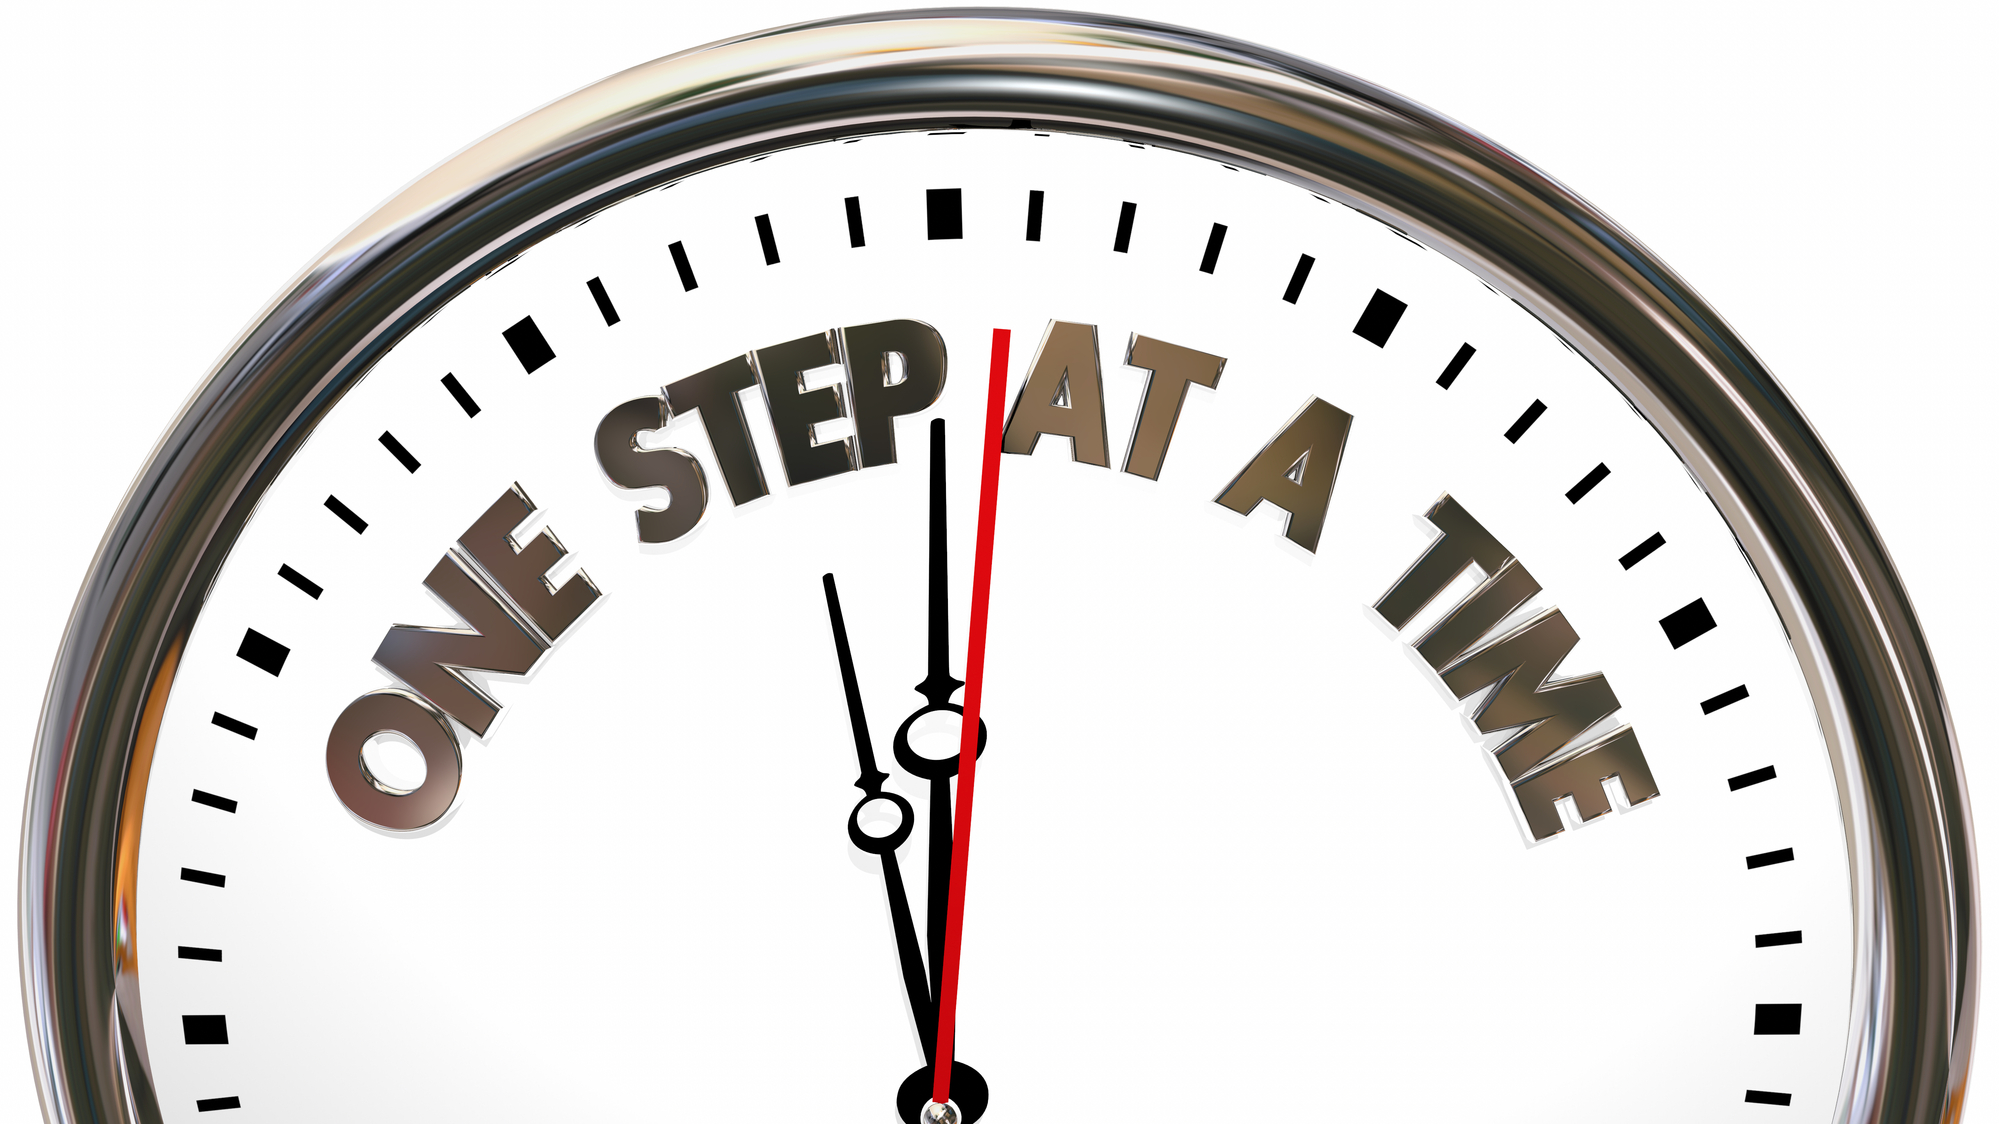 One Step at a Time Clock Words 3d Illustration